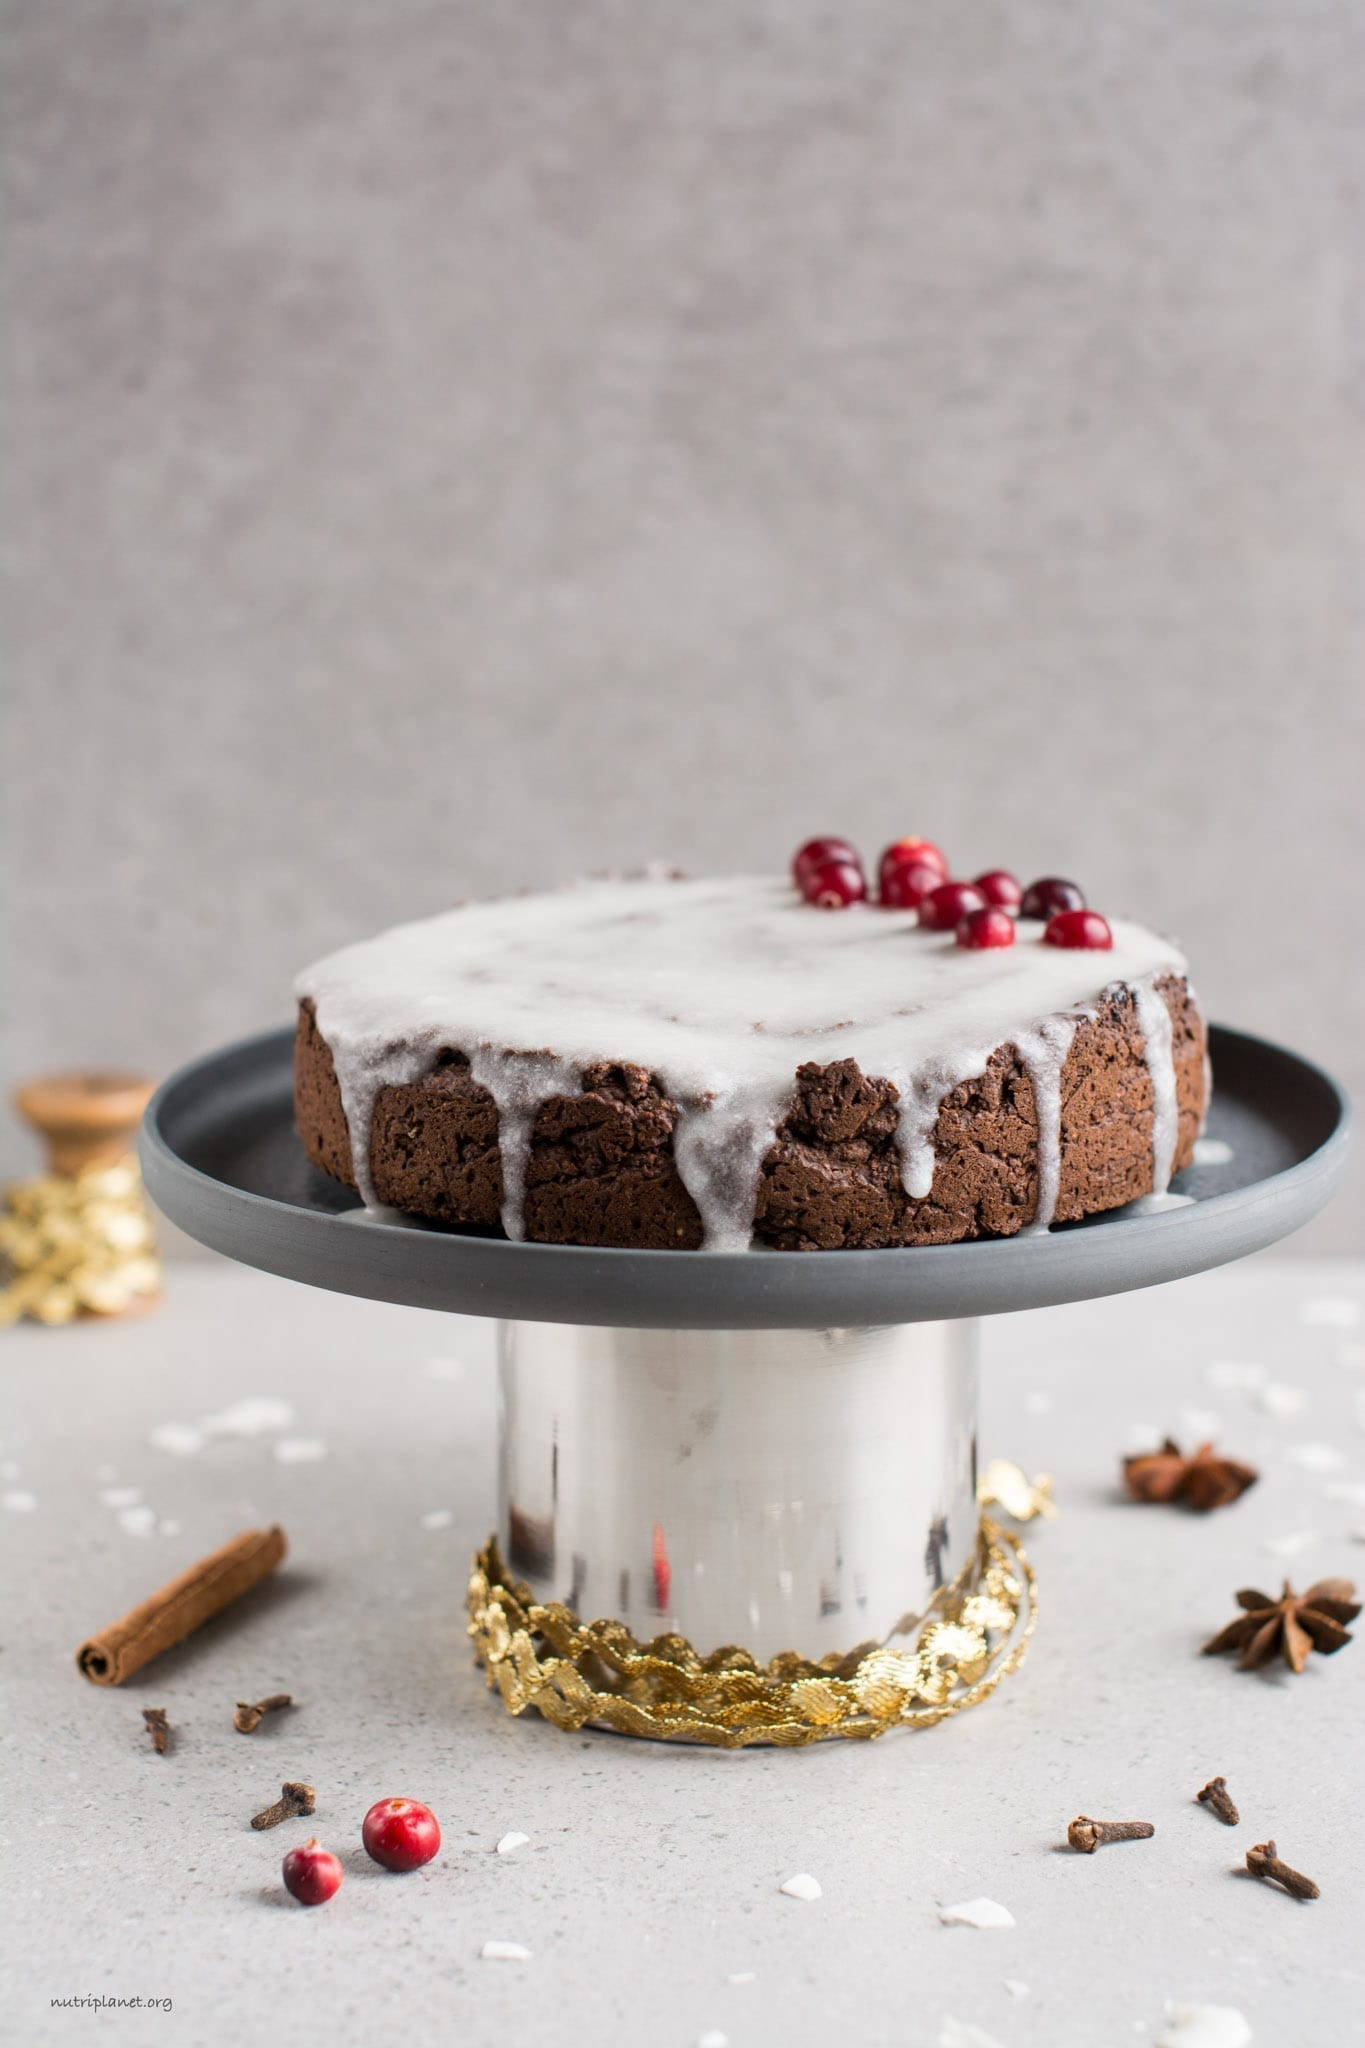 Gluten-Free Vegan Gingerbread Cake with Royal Icing